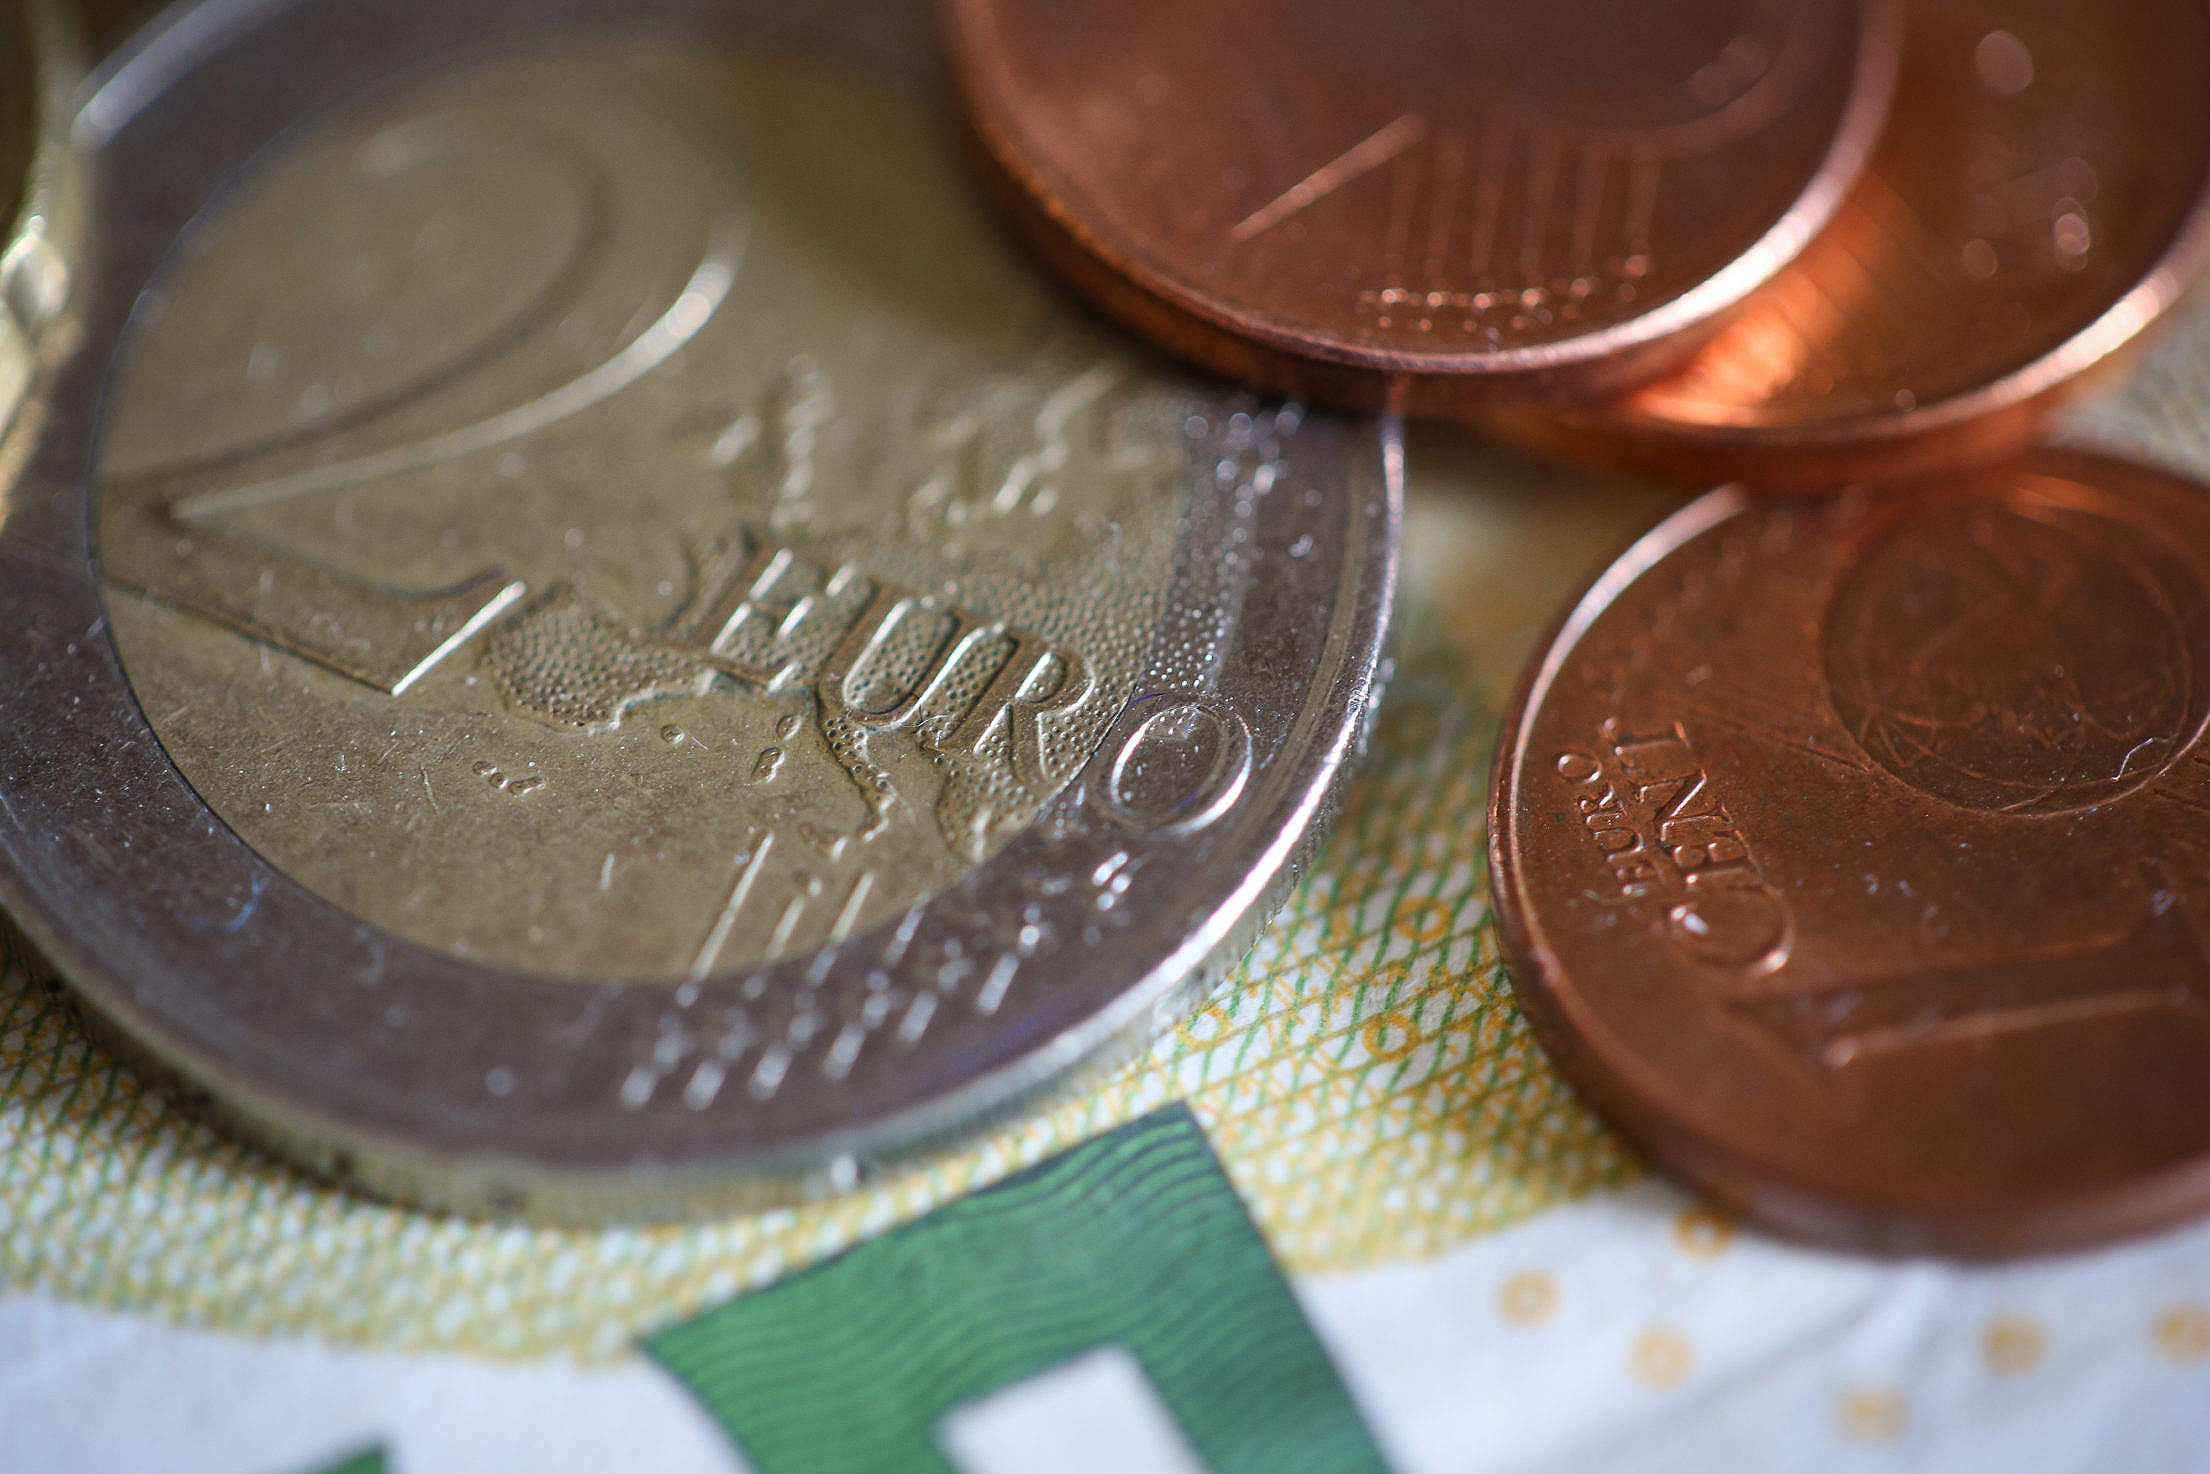 euro-coins-close-up_free_stock_photos_picjumbo_hnck7760-2210x1474.jpg